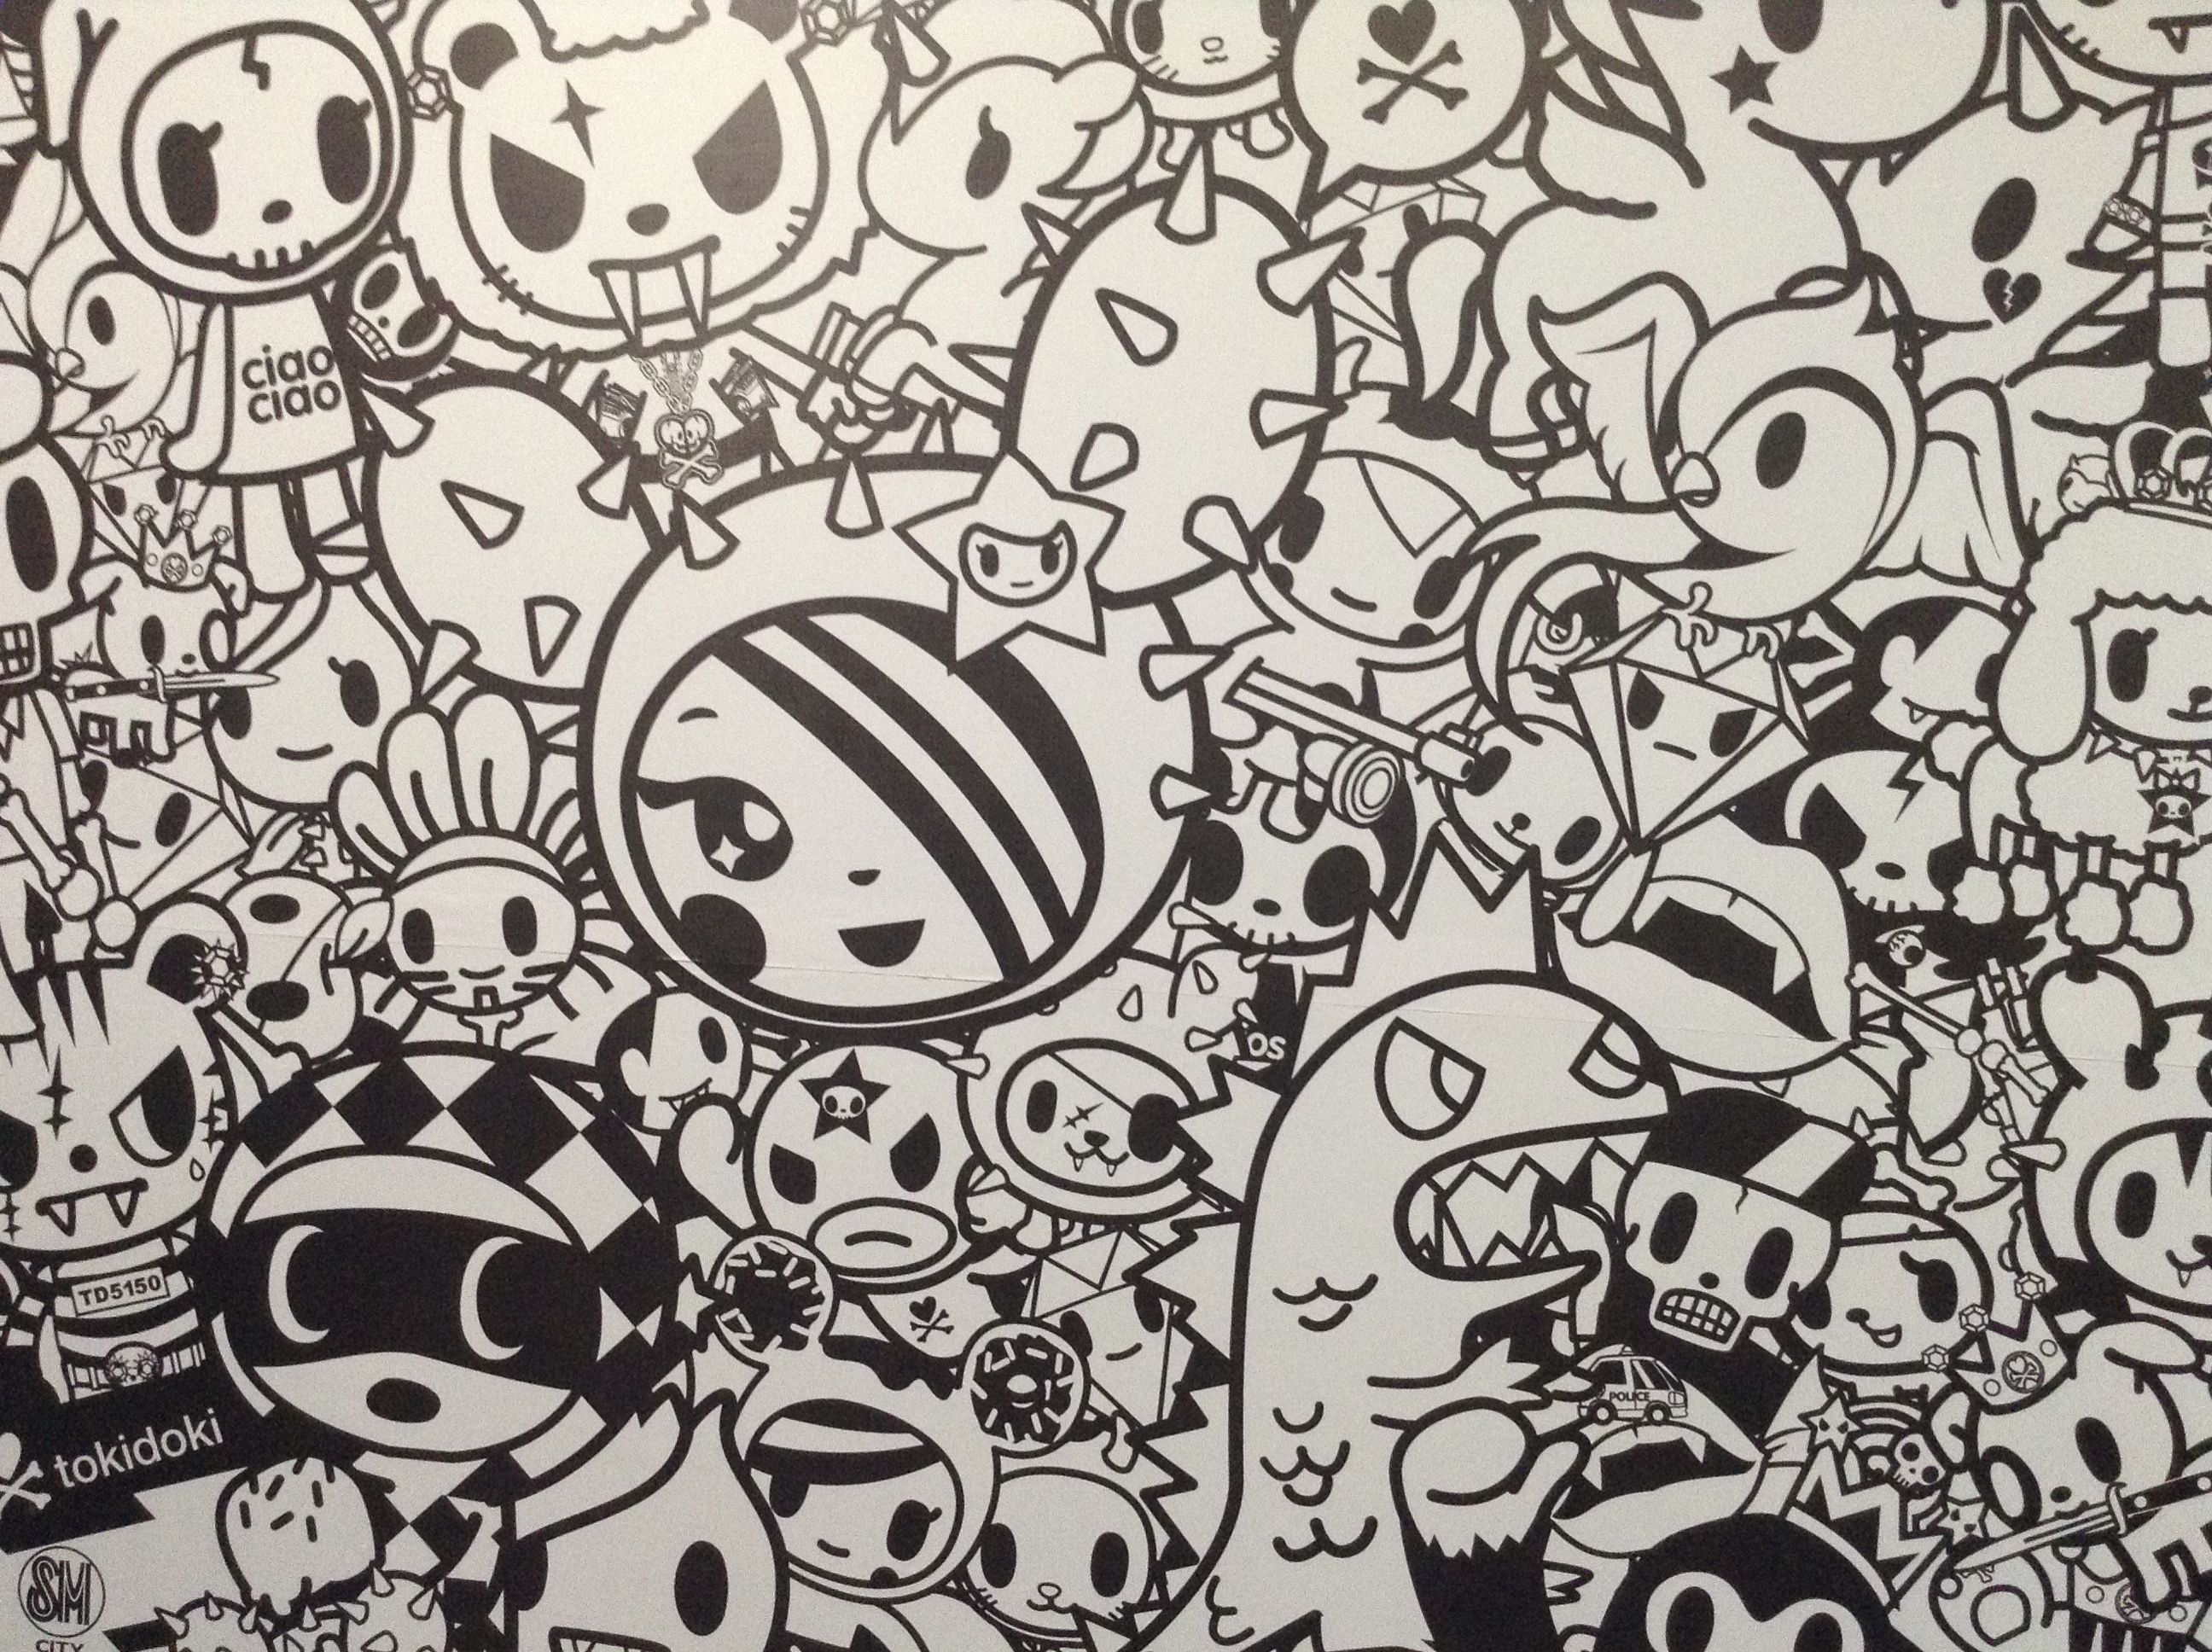 tokidoki unicorno coloring pages - Tokidoki Donutella Coloring Pages